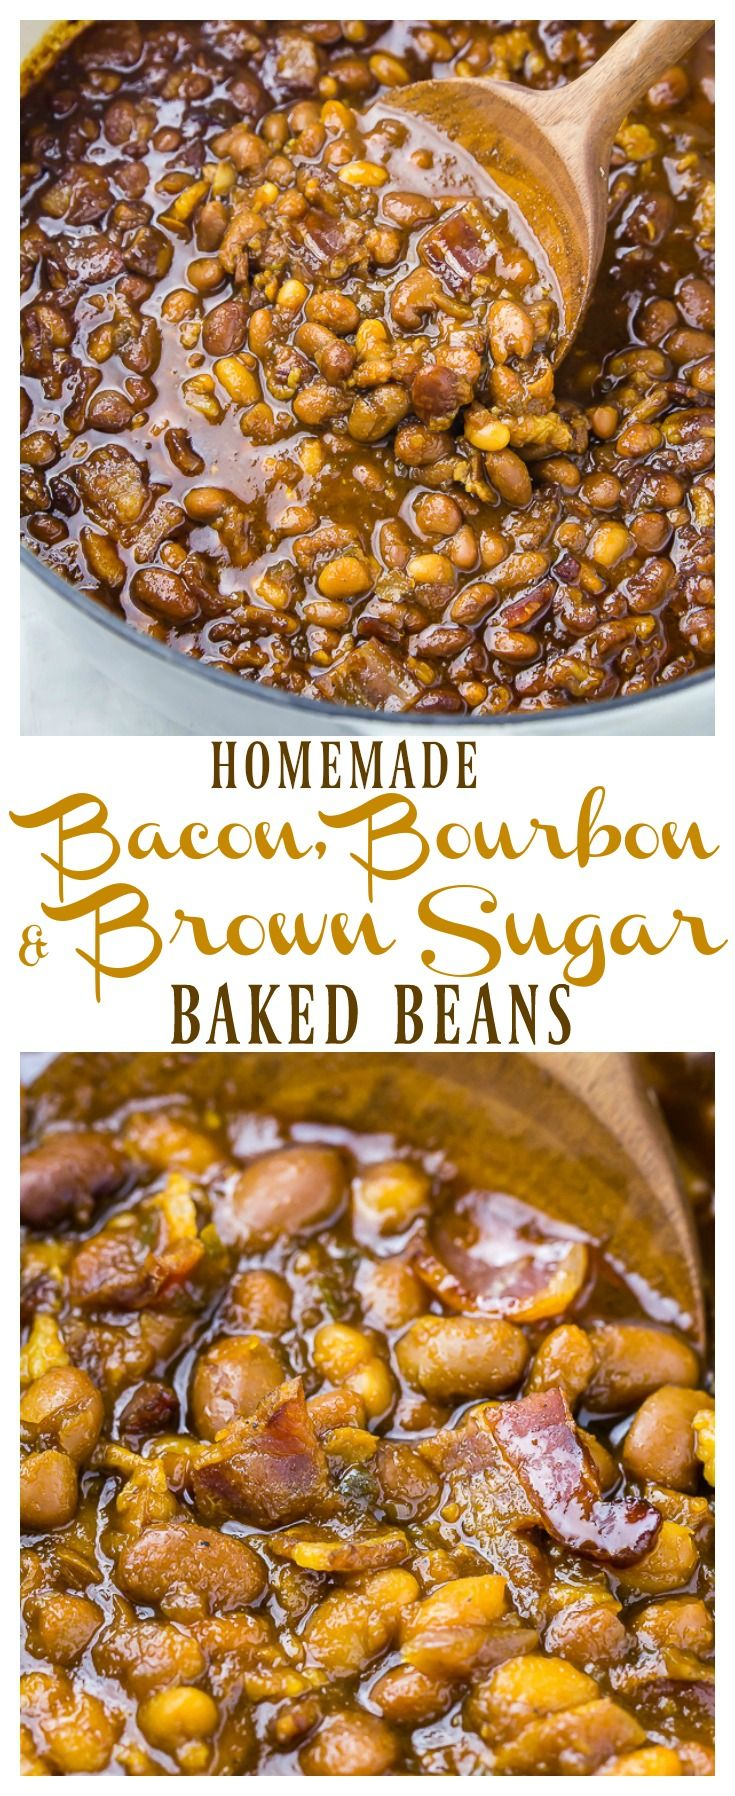 Homemade Bacon, Bourbon & Brown Sugar Baked Beans.  Includes instructions for canned or dried beans, plus directions for the oven, stove top & slow cooker! via @nospoonn